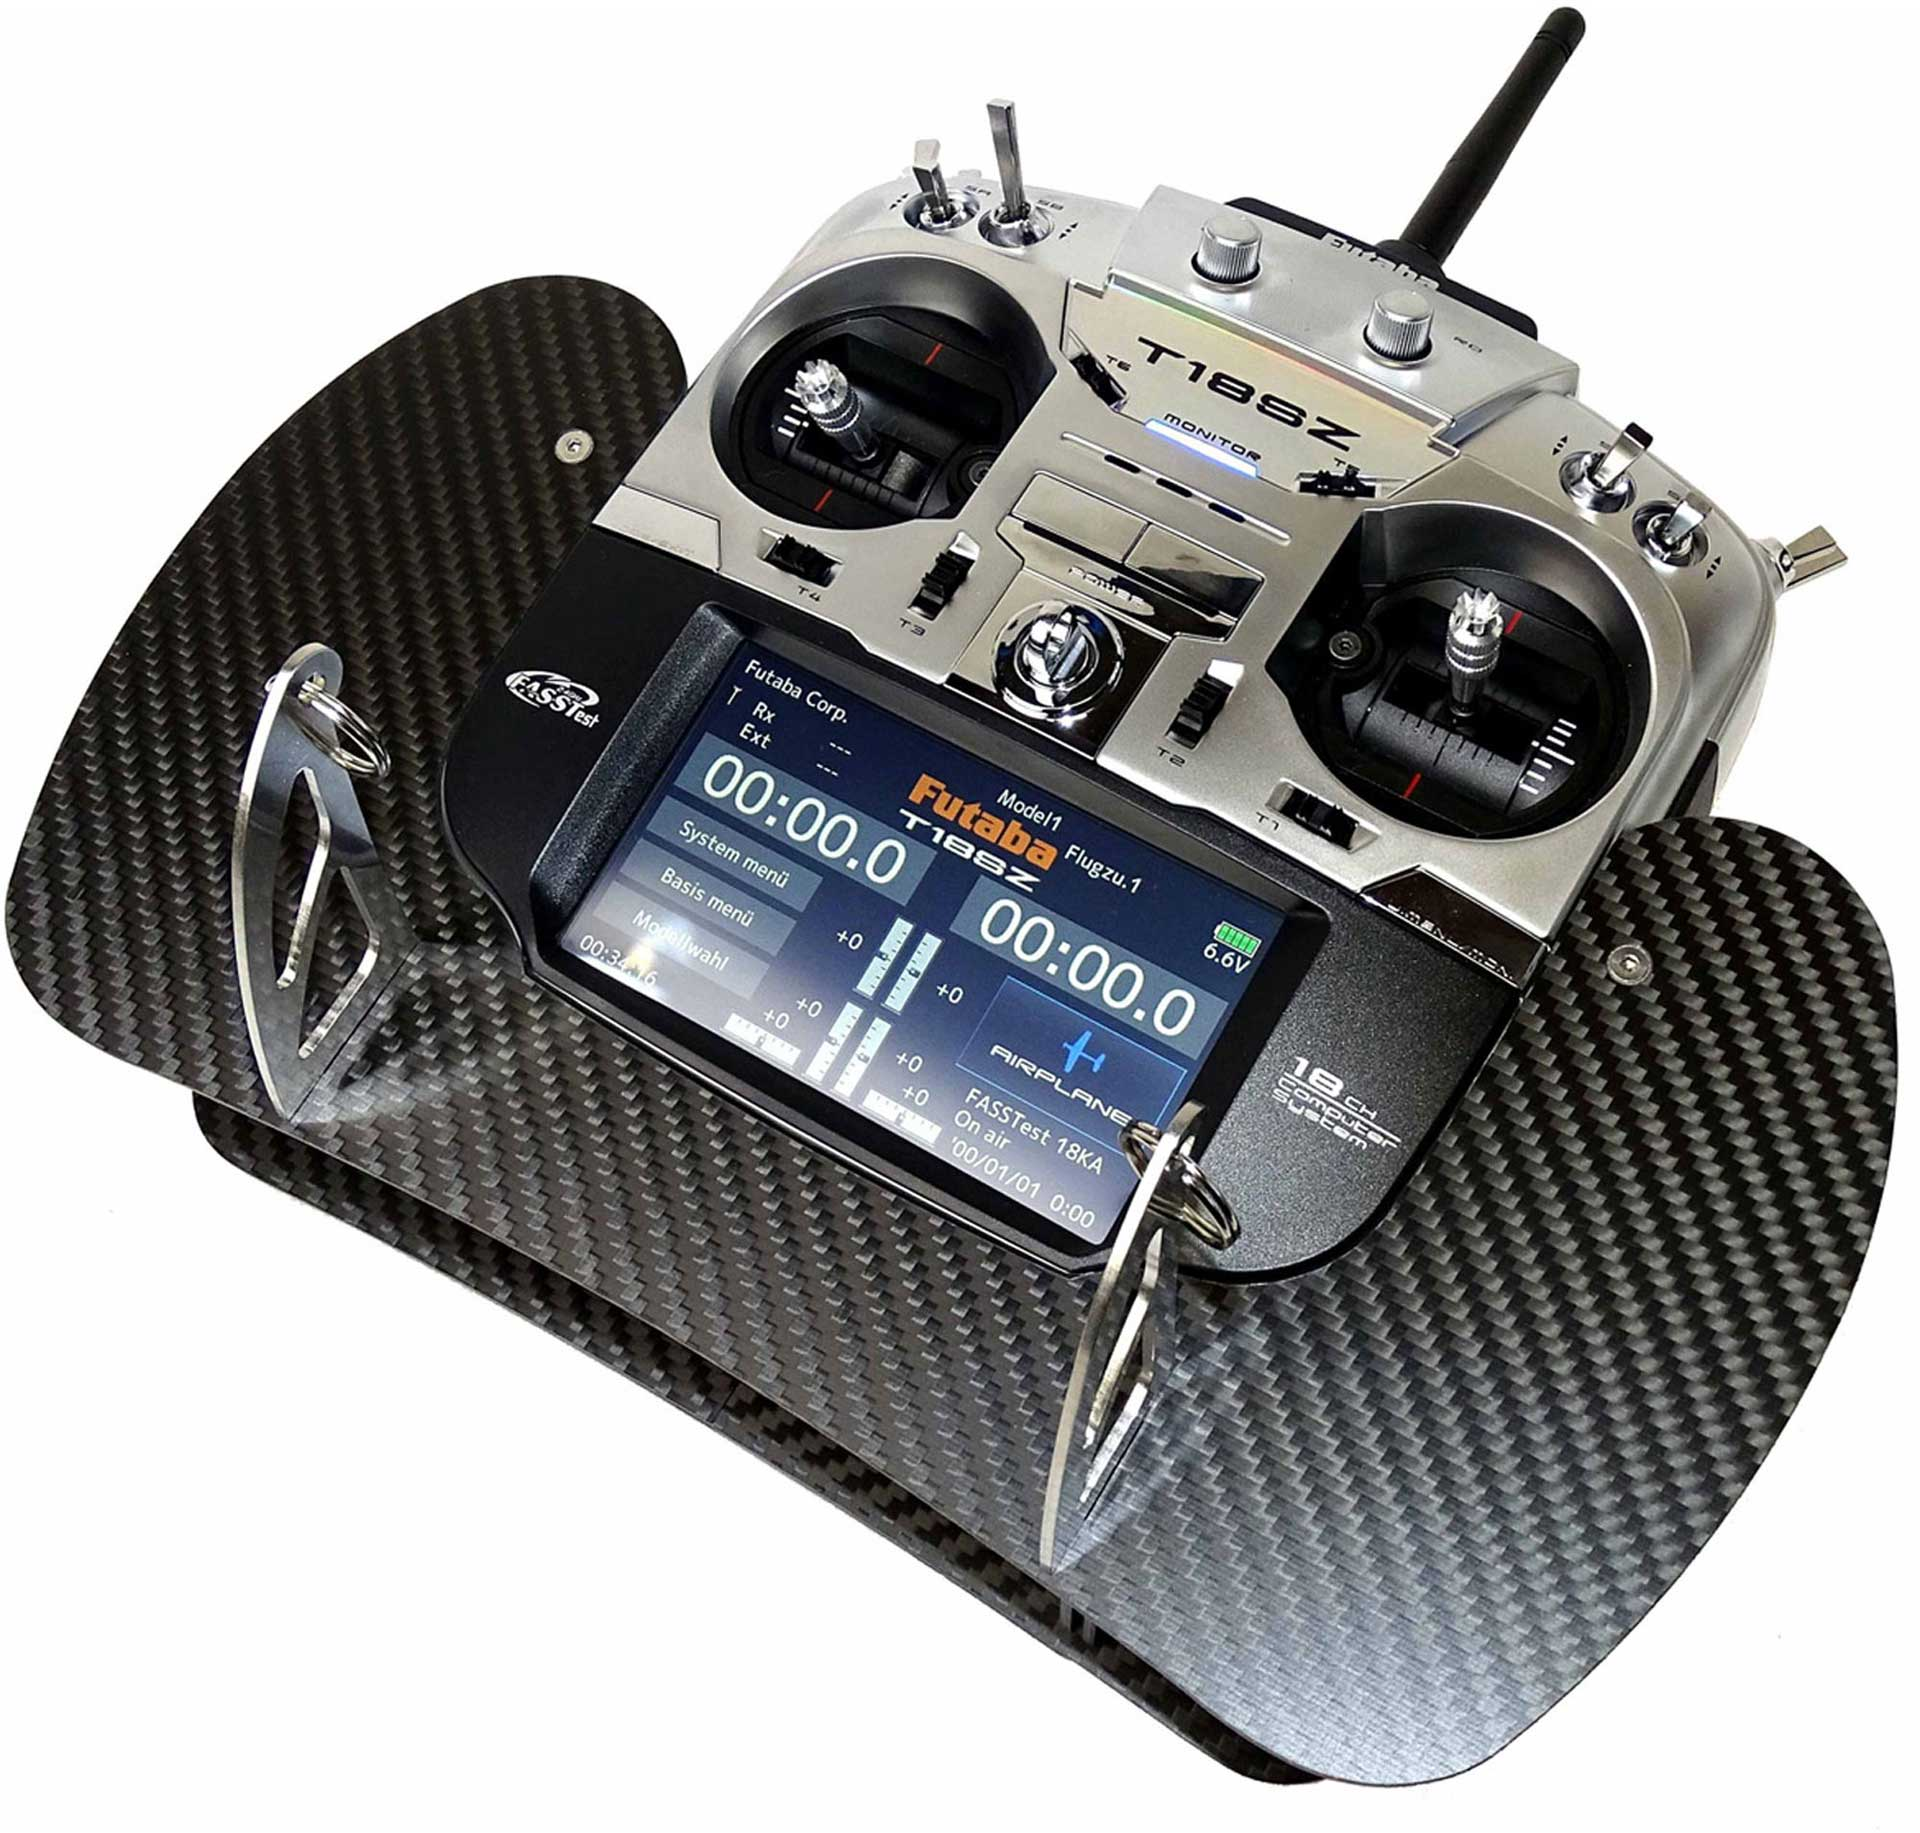 AHLTEC TRANSMITTER CONSOLE FUTABA T18SZ IN CARBON (ALSO SUITABLE FOR T16SZ)